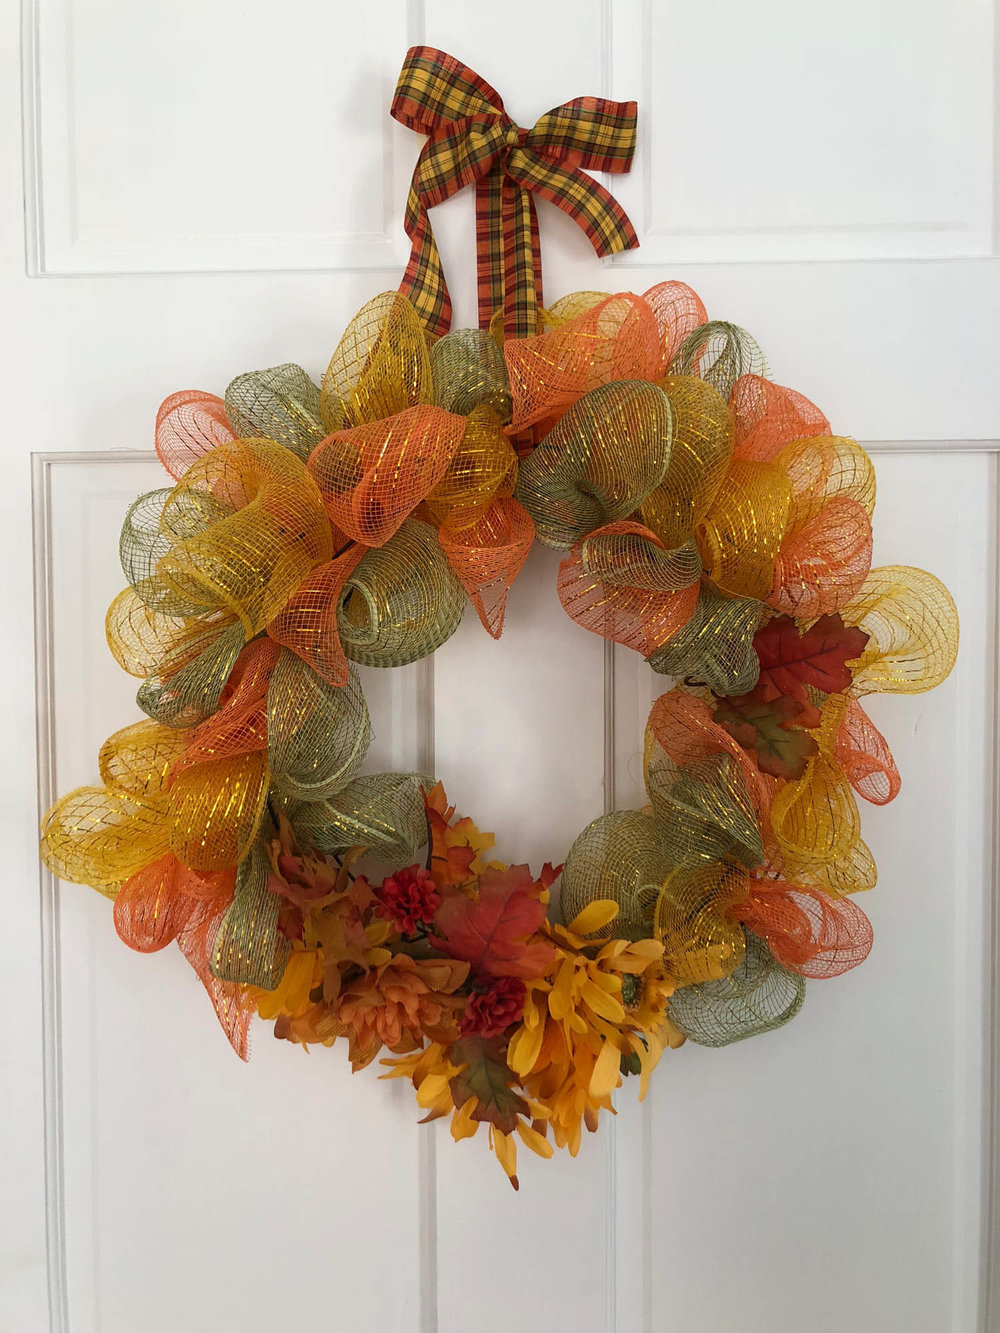 Wire ribbon wrapped on a metal wire frame wreath form base.